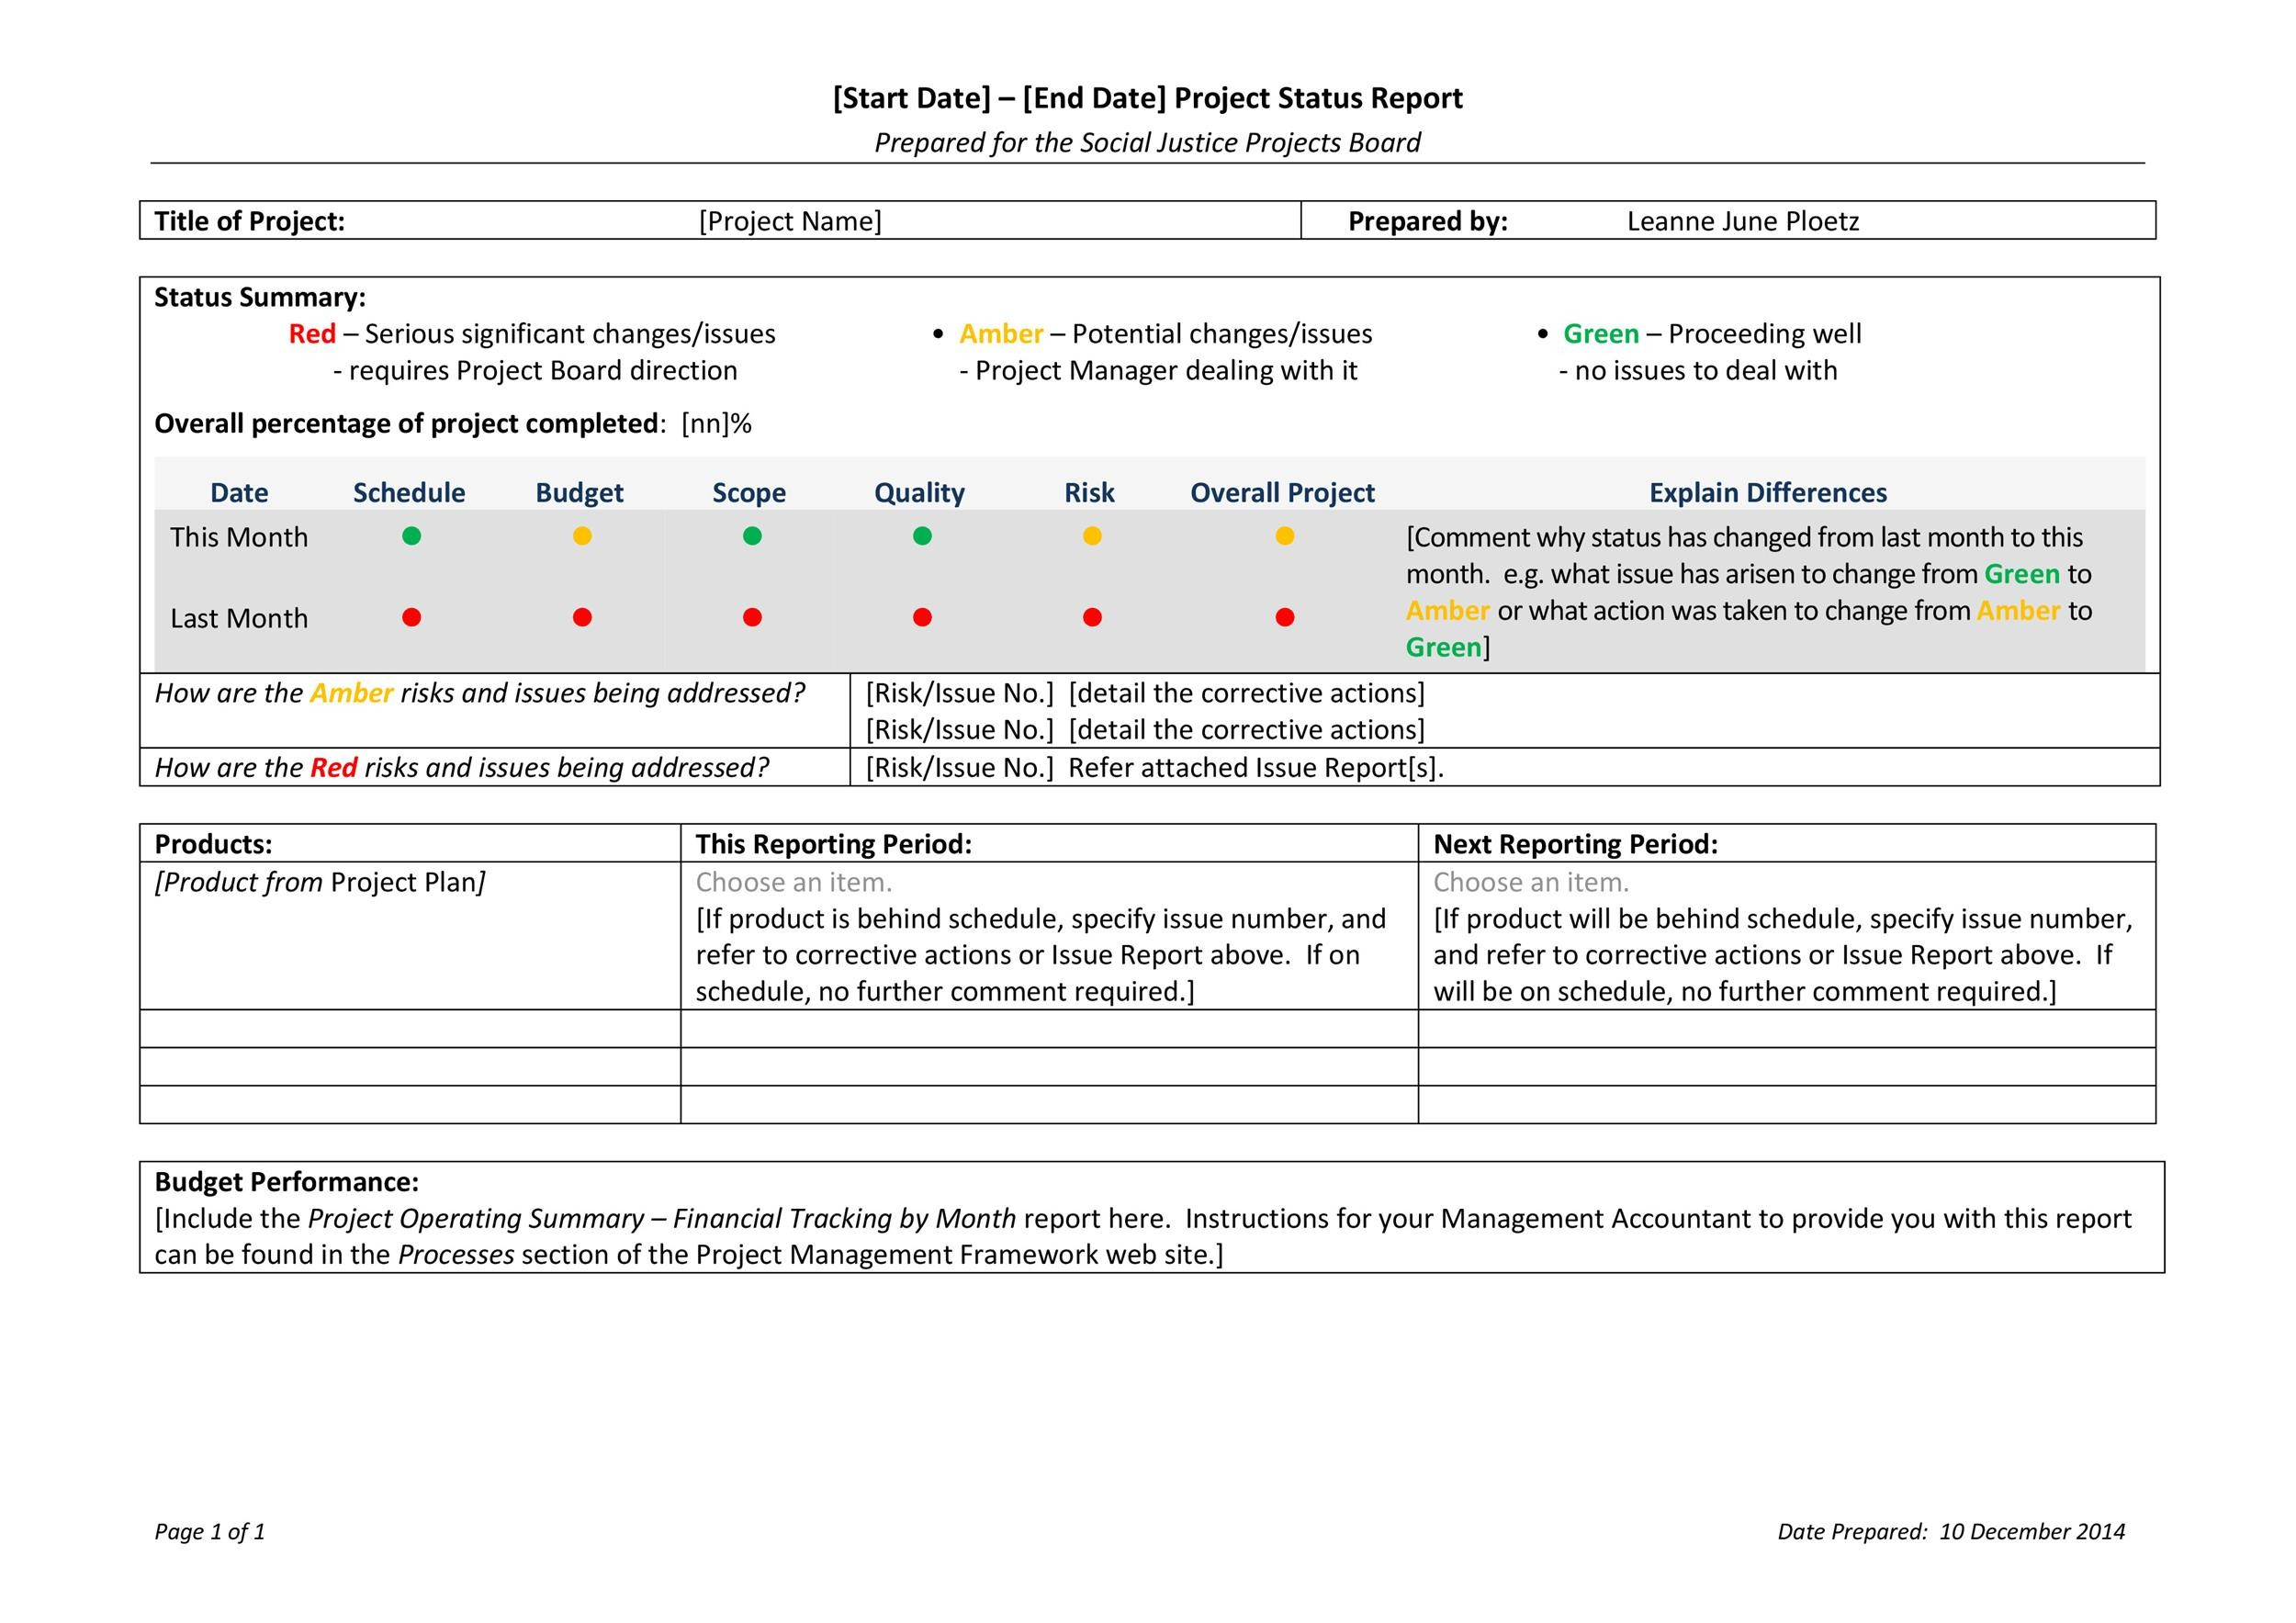 40+ Project Status Report Templates Word, Excel, PPT - Template Lab - status report template